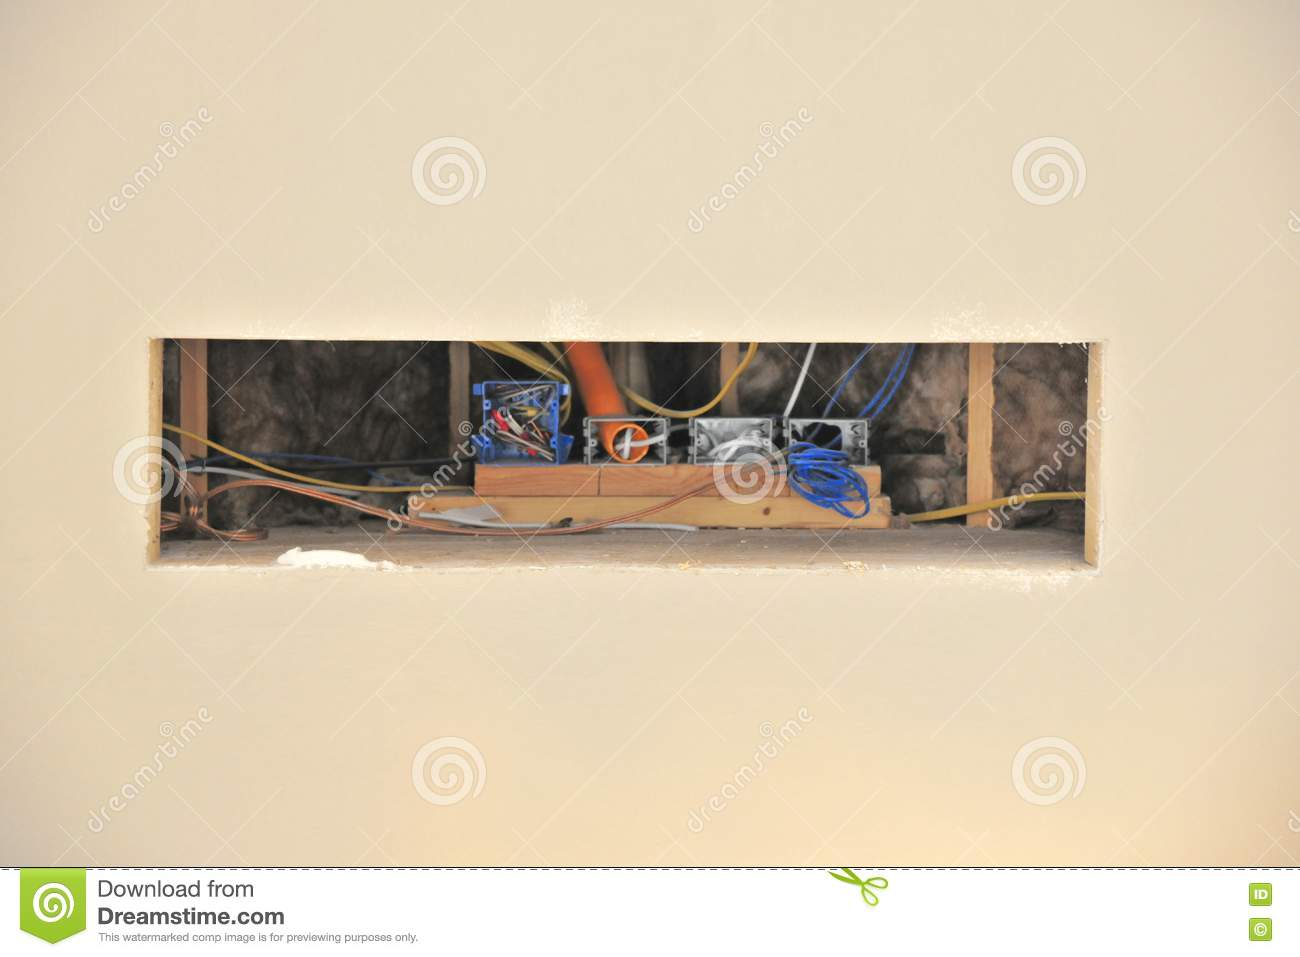 Swell Wiring Cut Out For Television Stock Image Image Of Home Wiring Digital Resources Xeirawoestevosnl